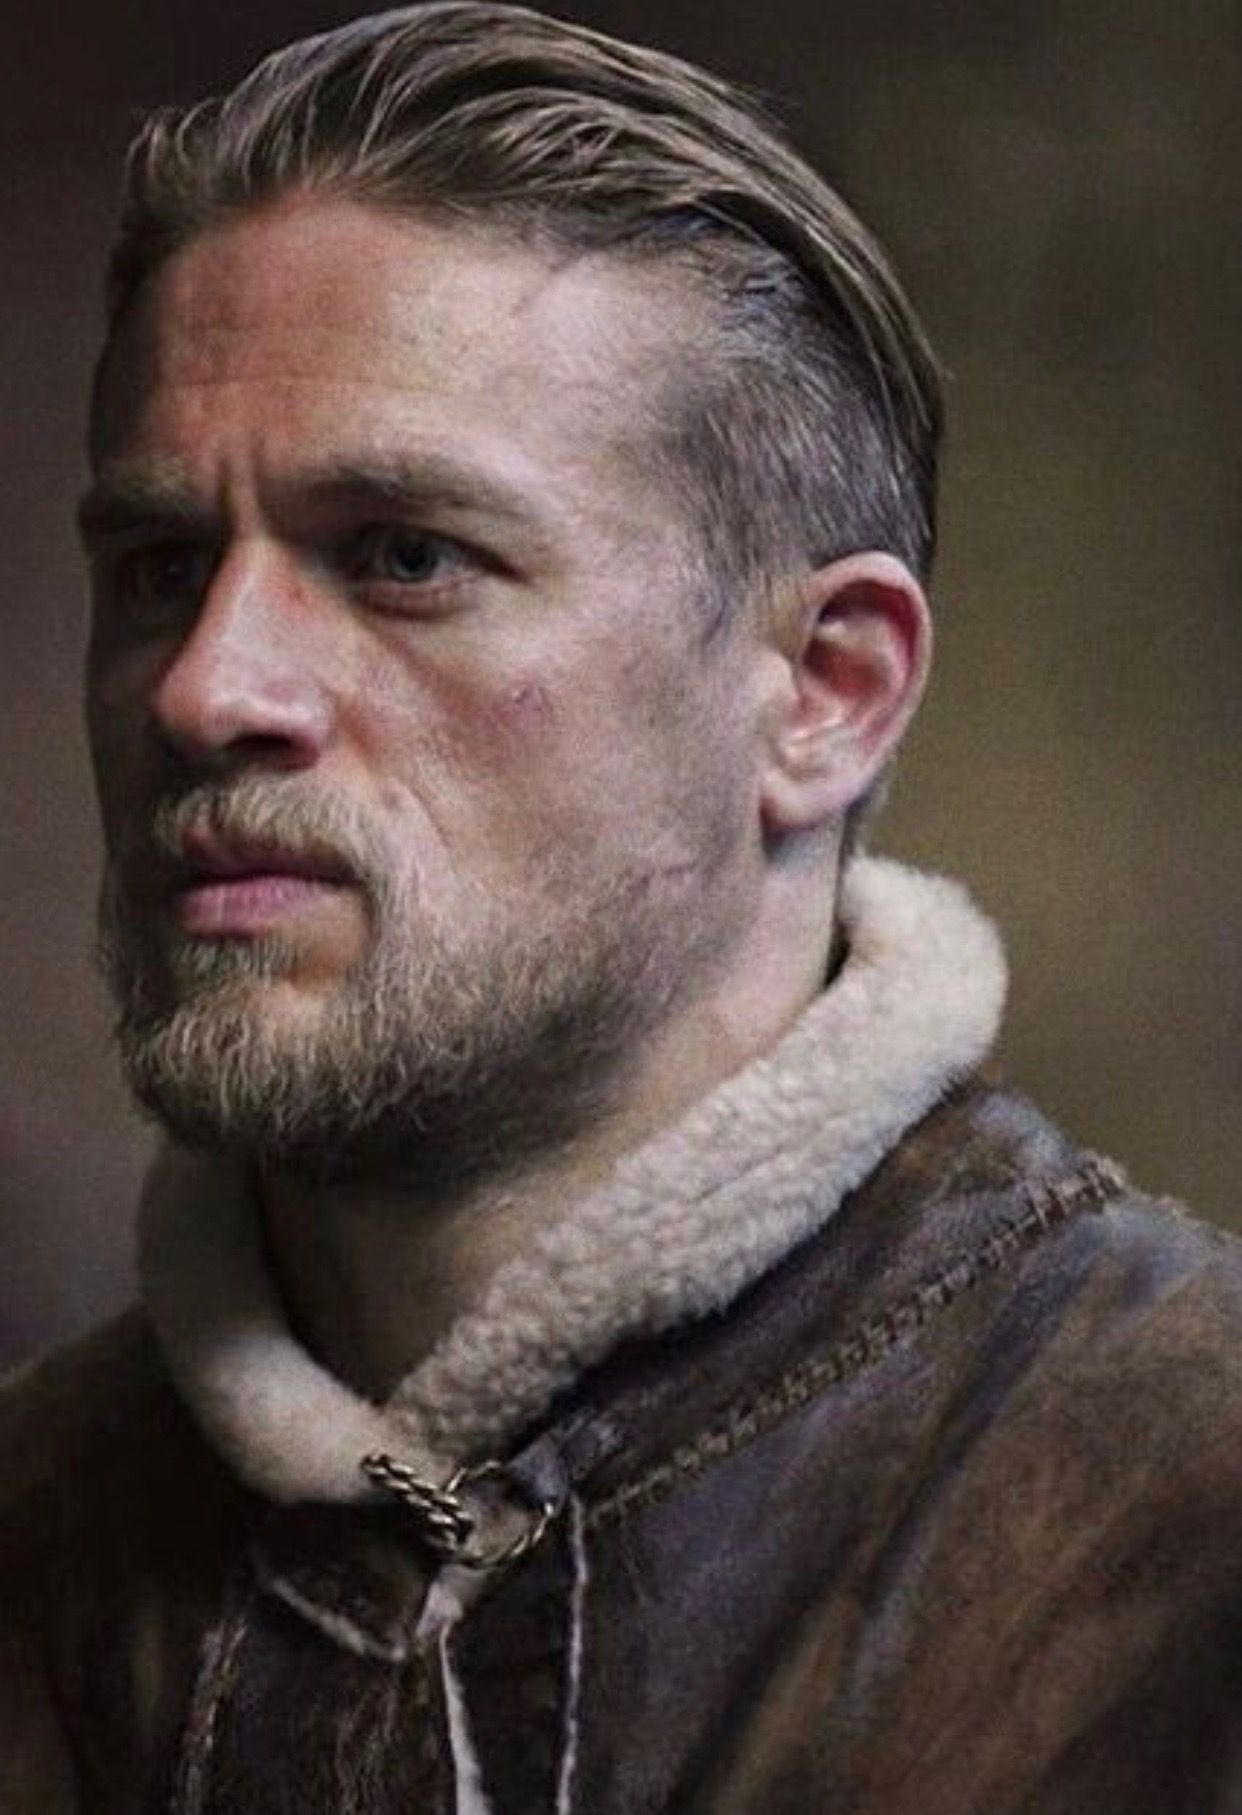 pin by majomei on my type of men | charlie hunnam king